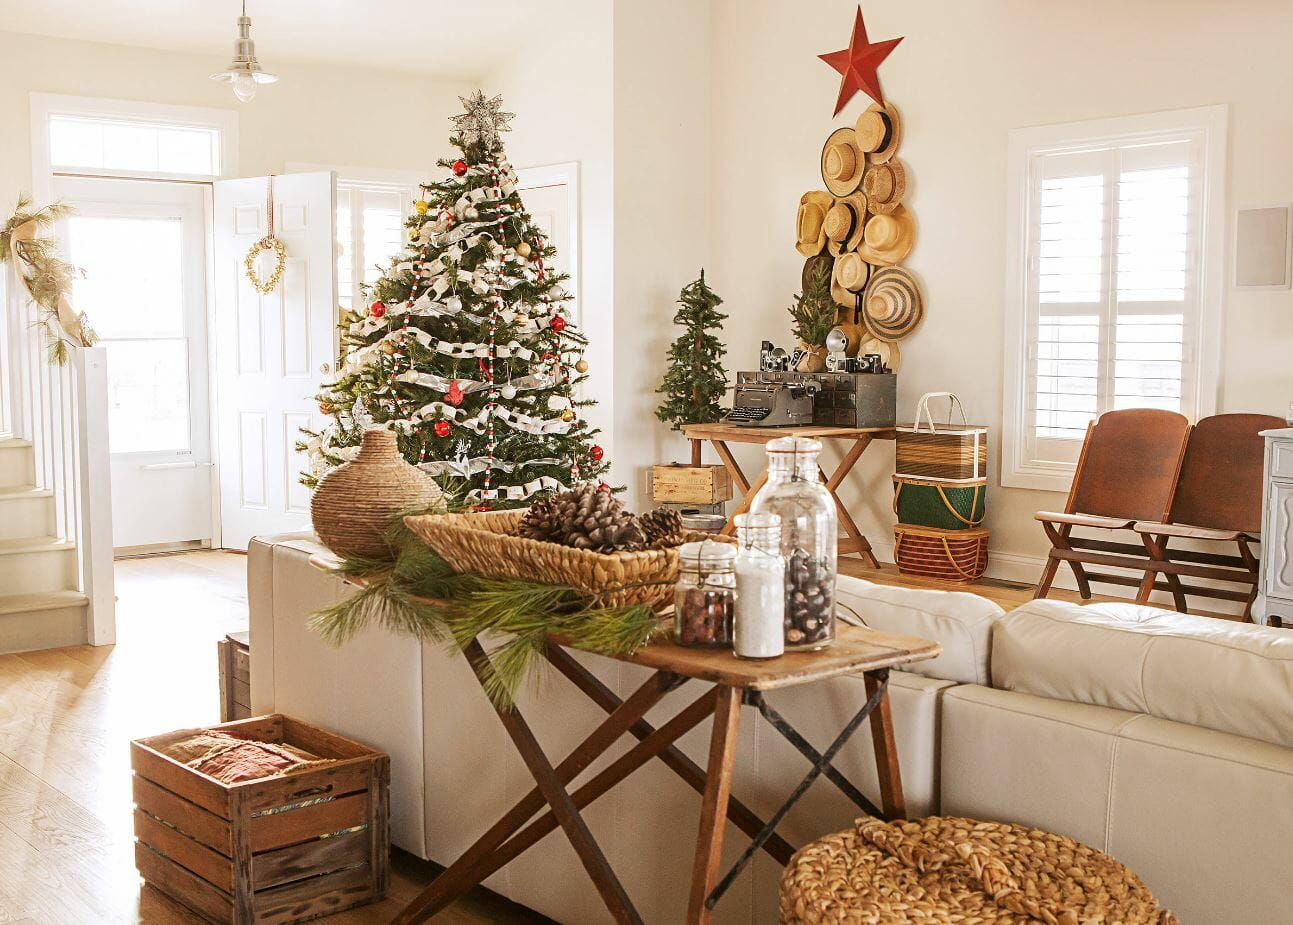 Top 10 Holiday Home Decor Trends